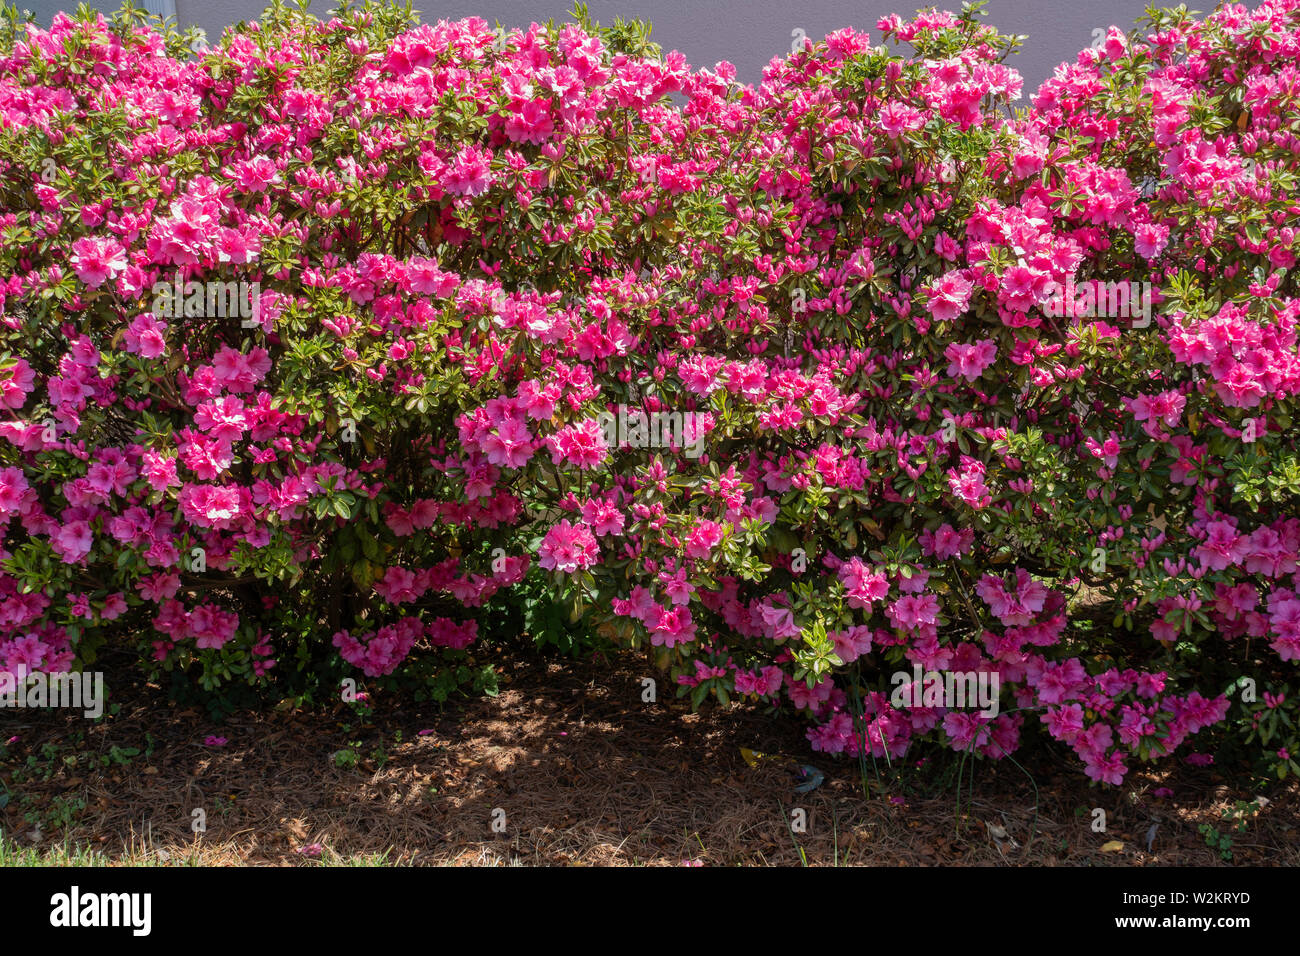 Pink azaleas, ericaceae, in bloom. USA. - Stock Image